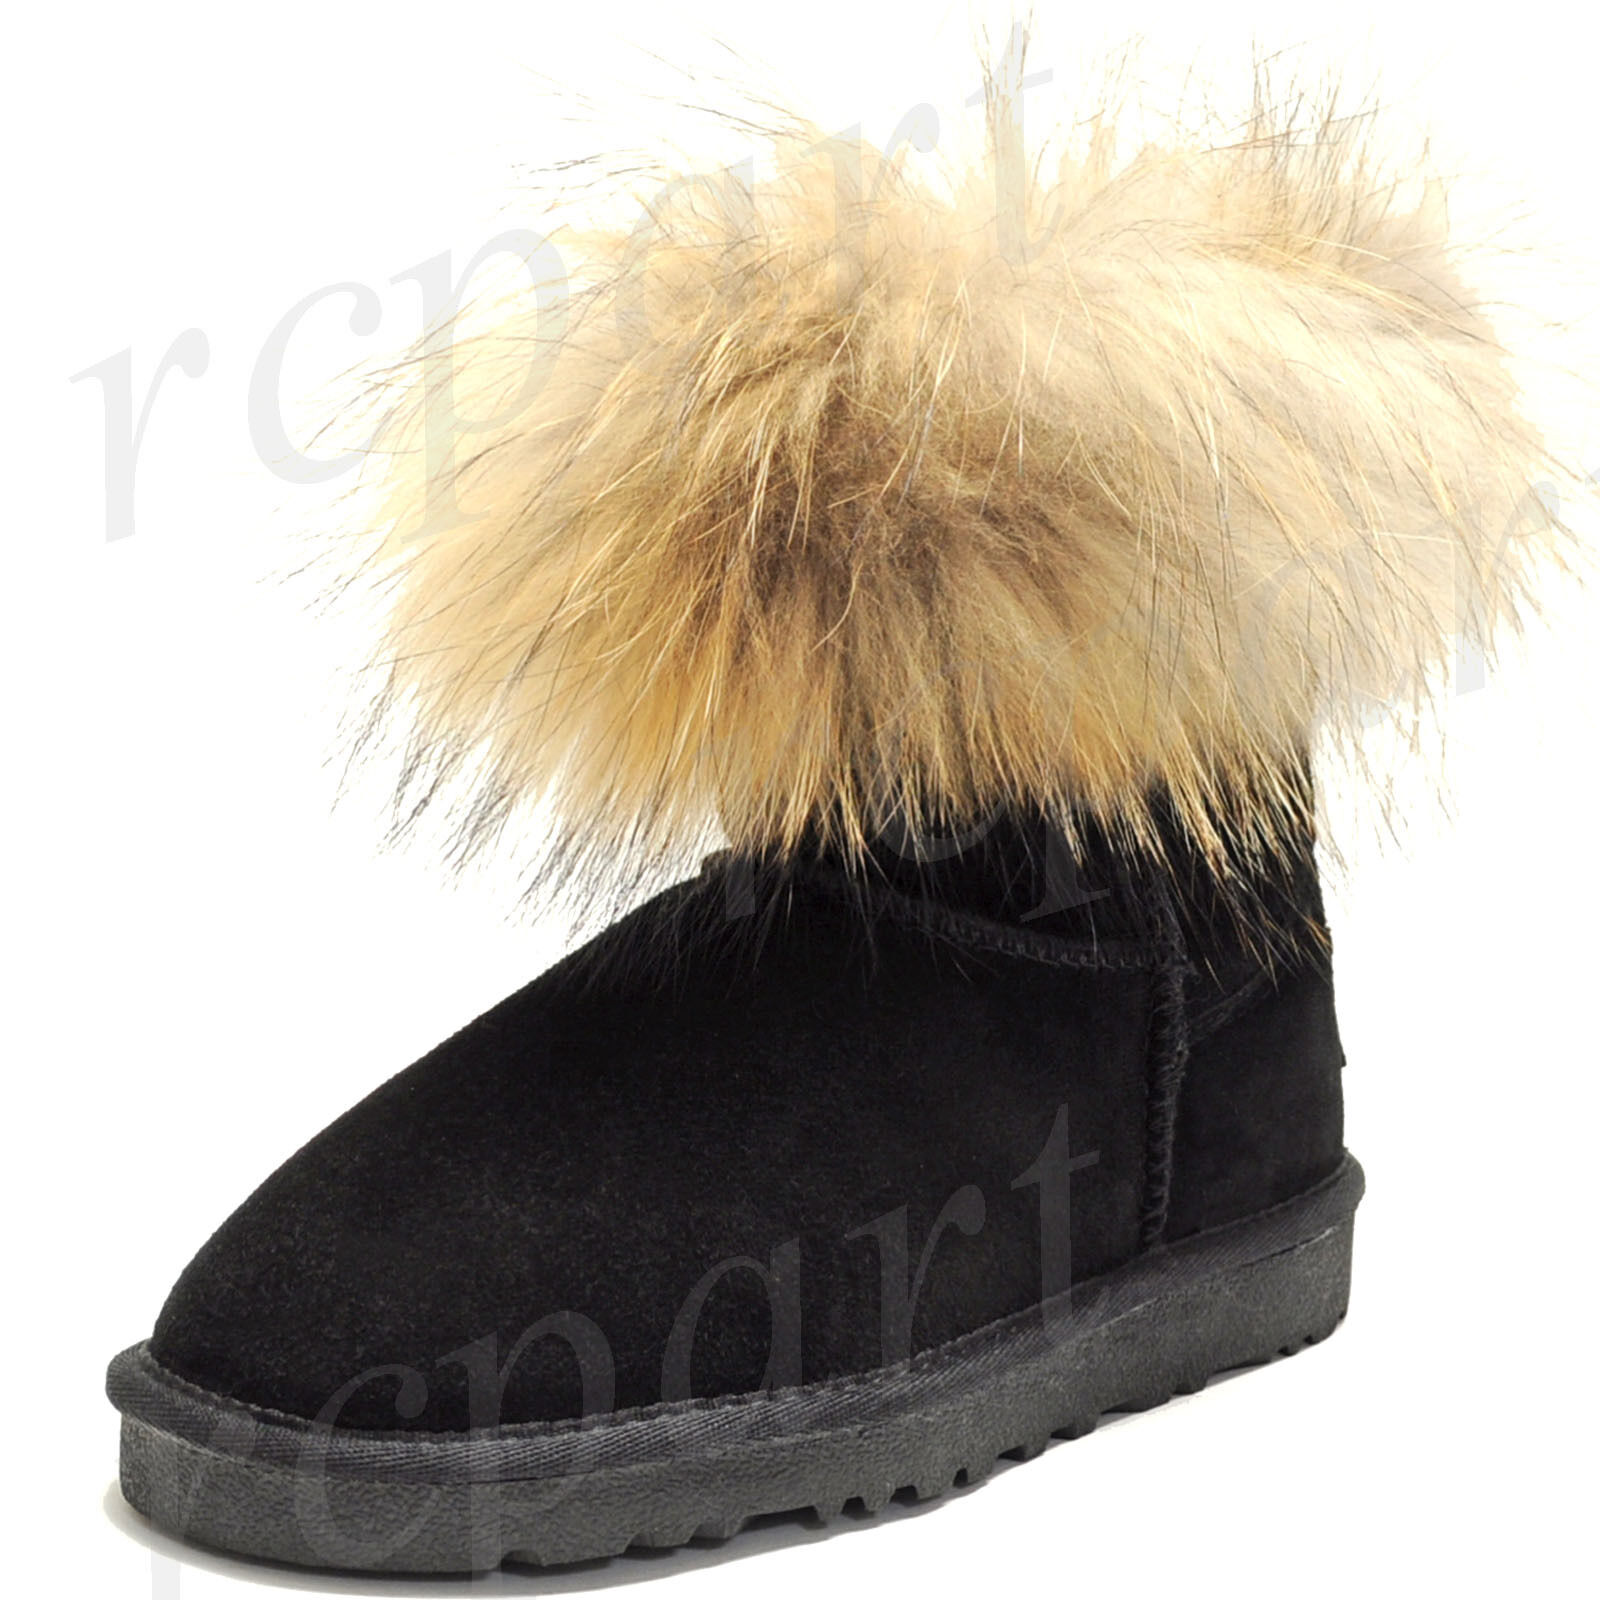 New women's shoes fashion mid shaft boot real suede & faux fur winter warm black